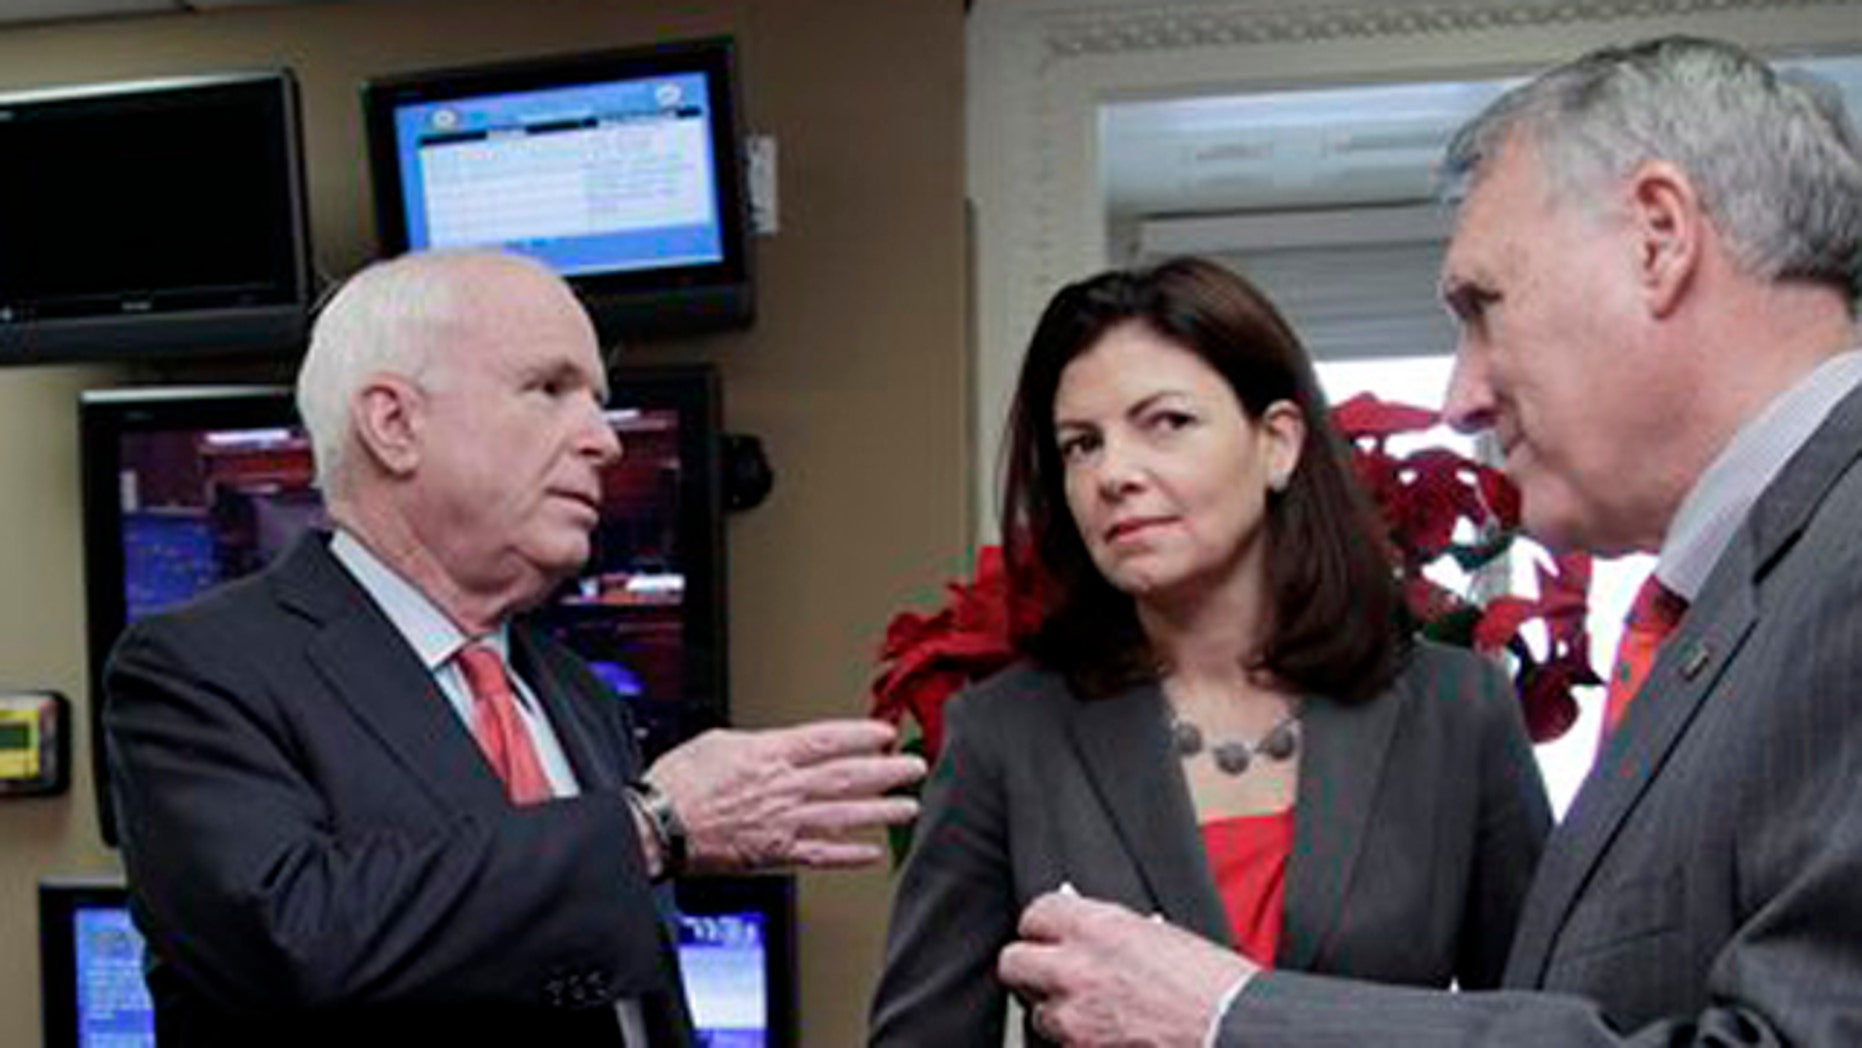 December 14, 2011: Senate Minority Whip Jon Kyl of Ariz., Sen. Kelly Ayotte, R-N.H., and Sen. John McCain, R-Ariz.,  ranking Republican on the Senate Armed Services Committee, confer before a news conference on Capitol Hill in Washington.